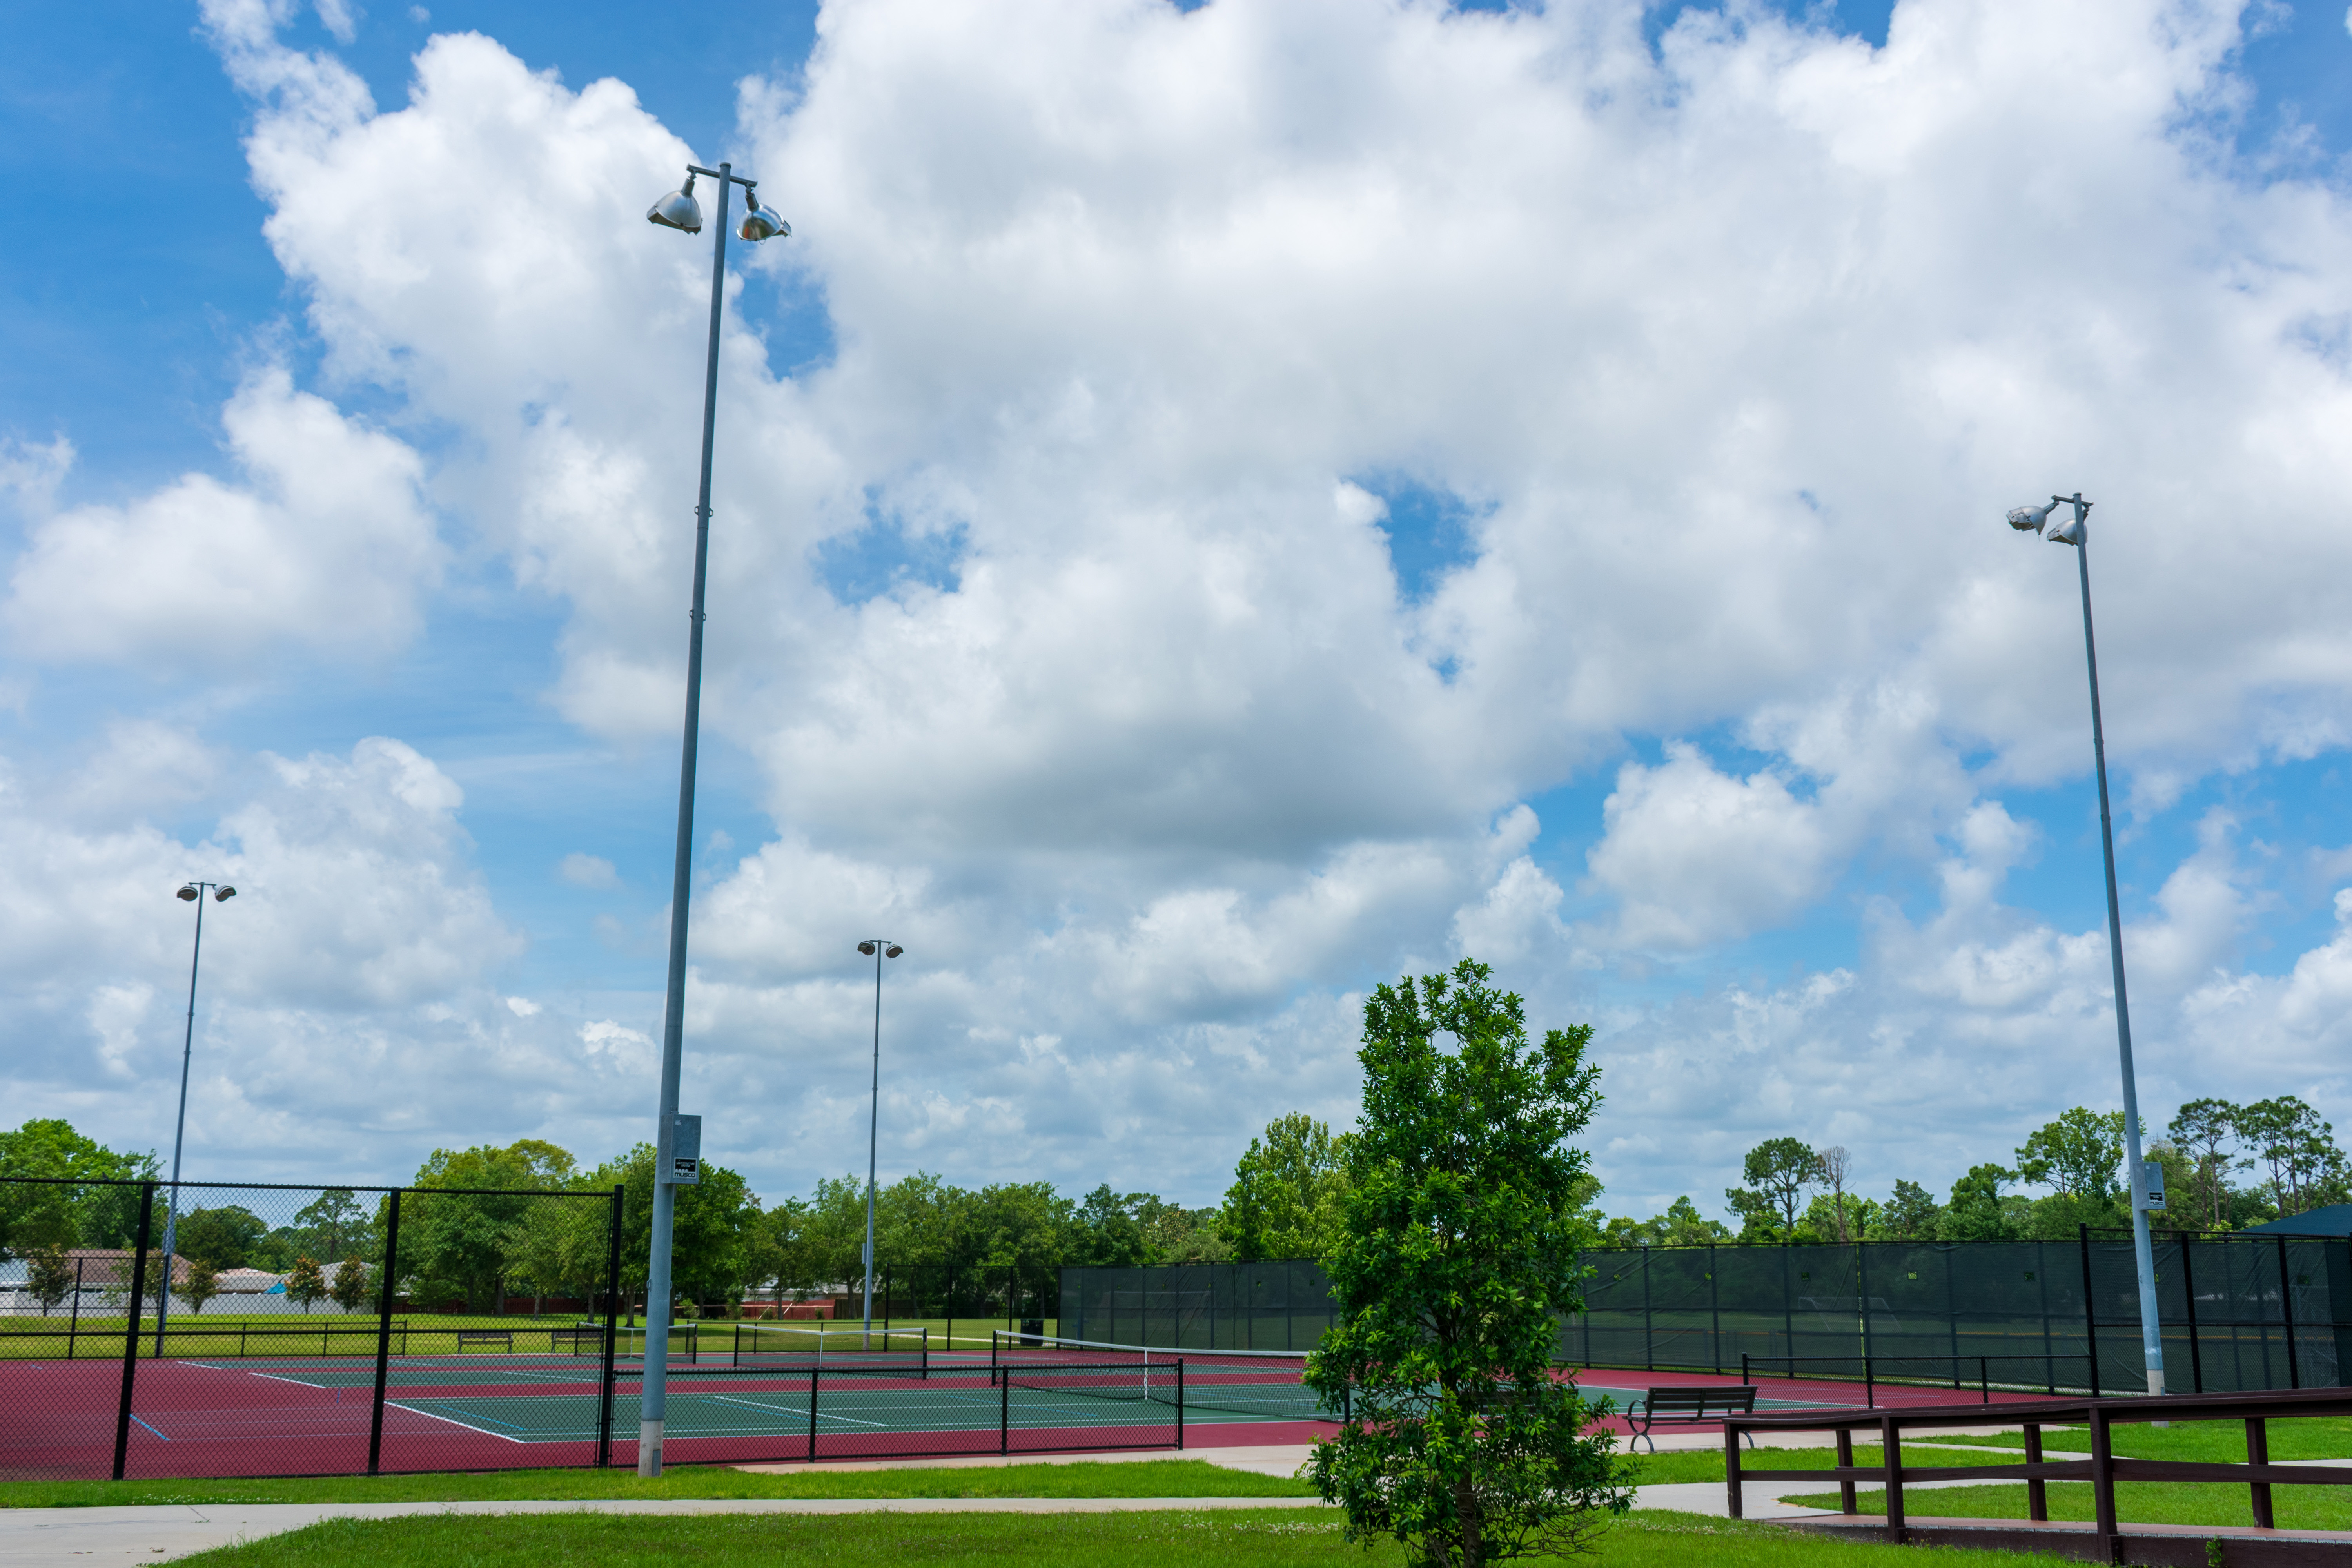 tennis court to get new LED lighting